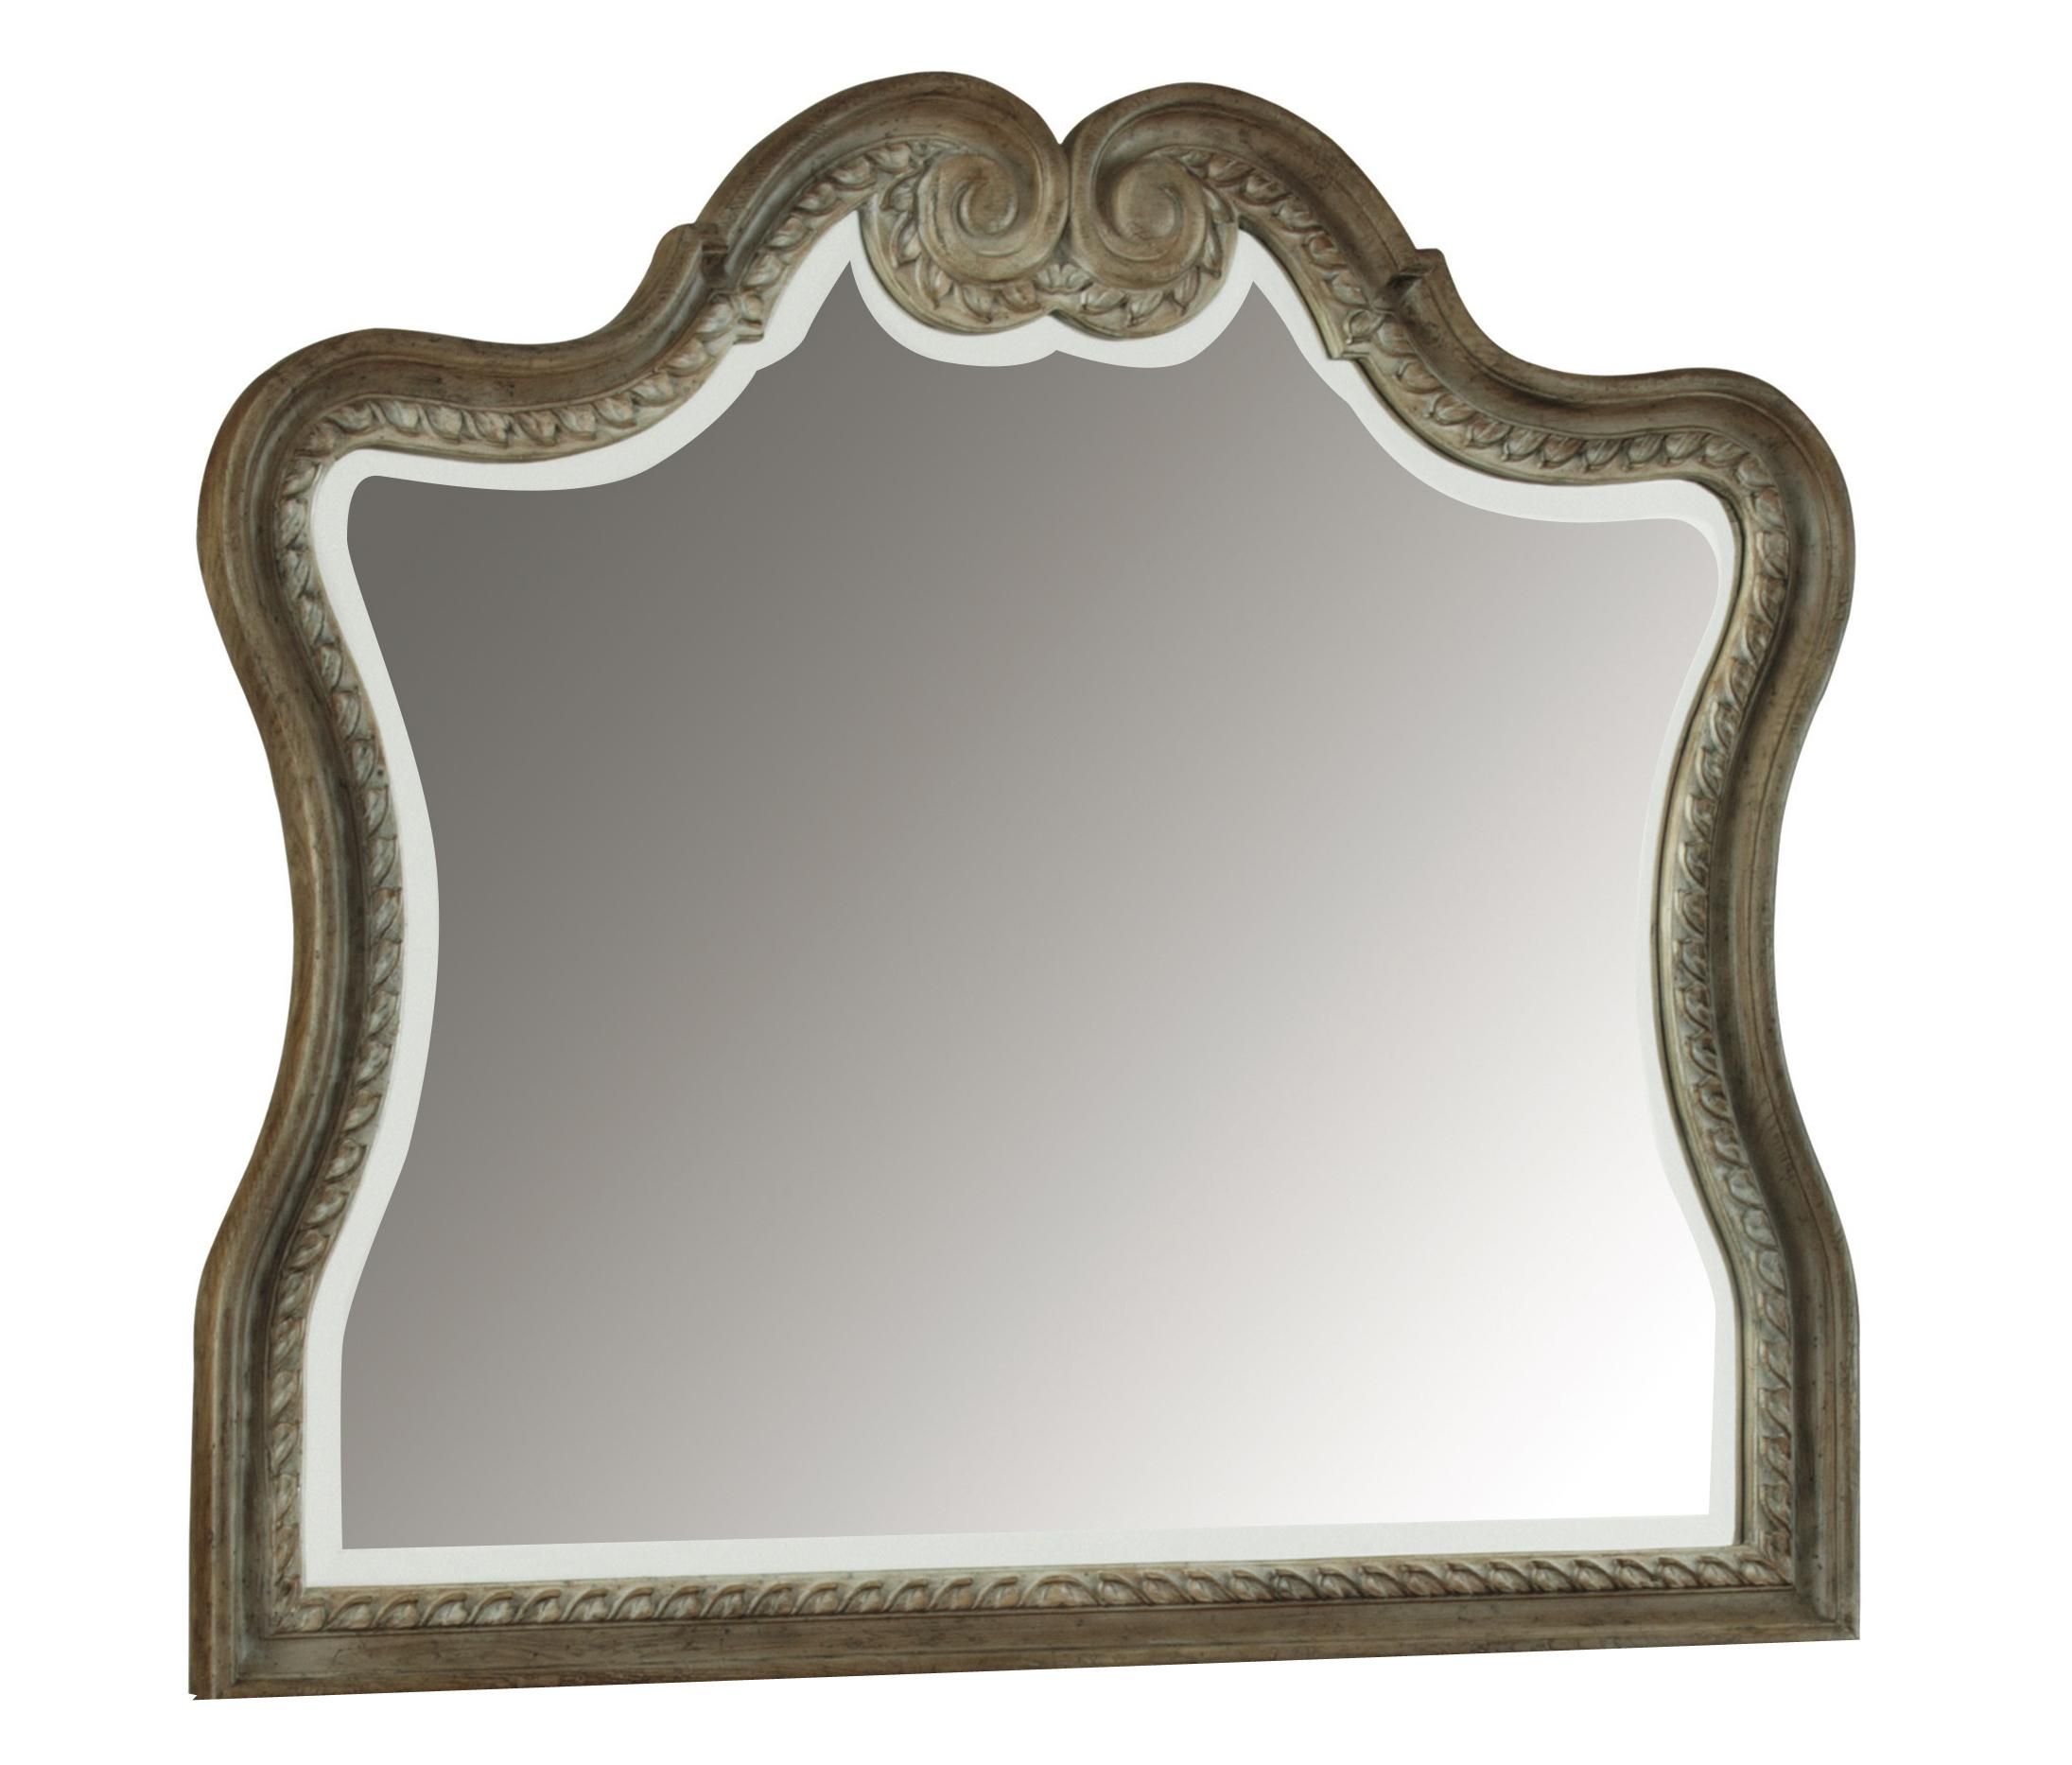 Unique Shaped Mirror Pulaski Furniture Arabella Decorative Shaped Mirror